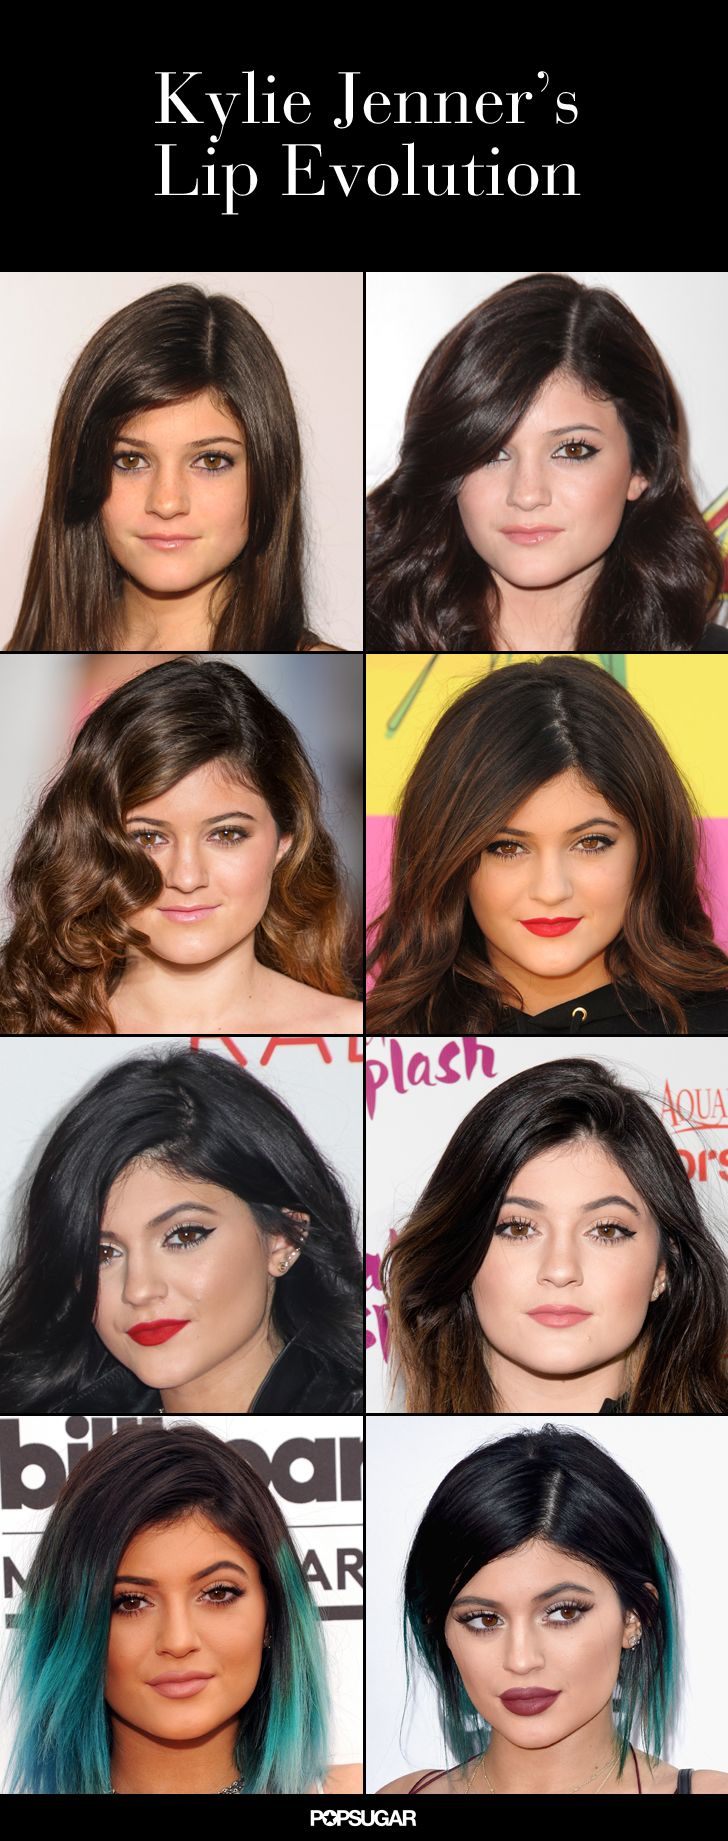 The transformation of Kylie's prodigious pout has to be seen to be believed.